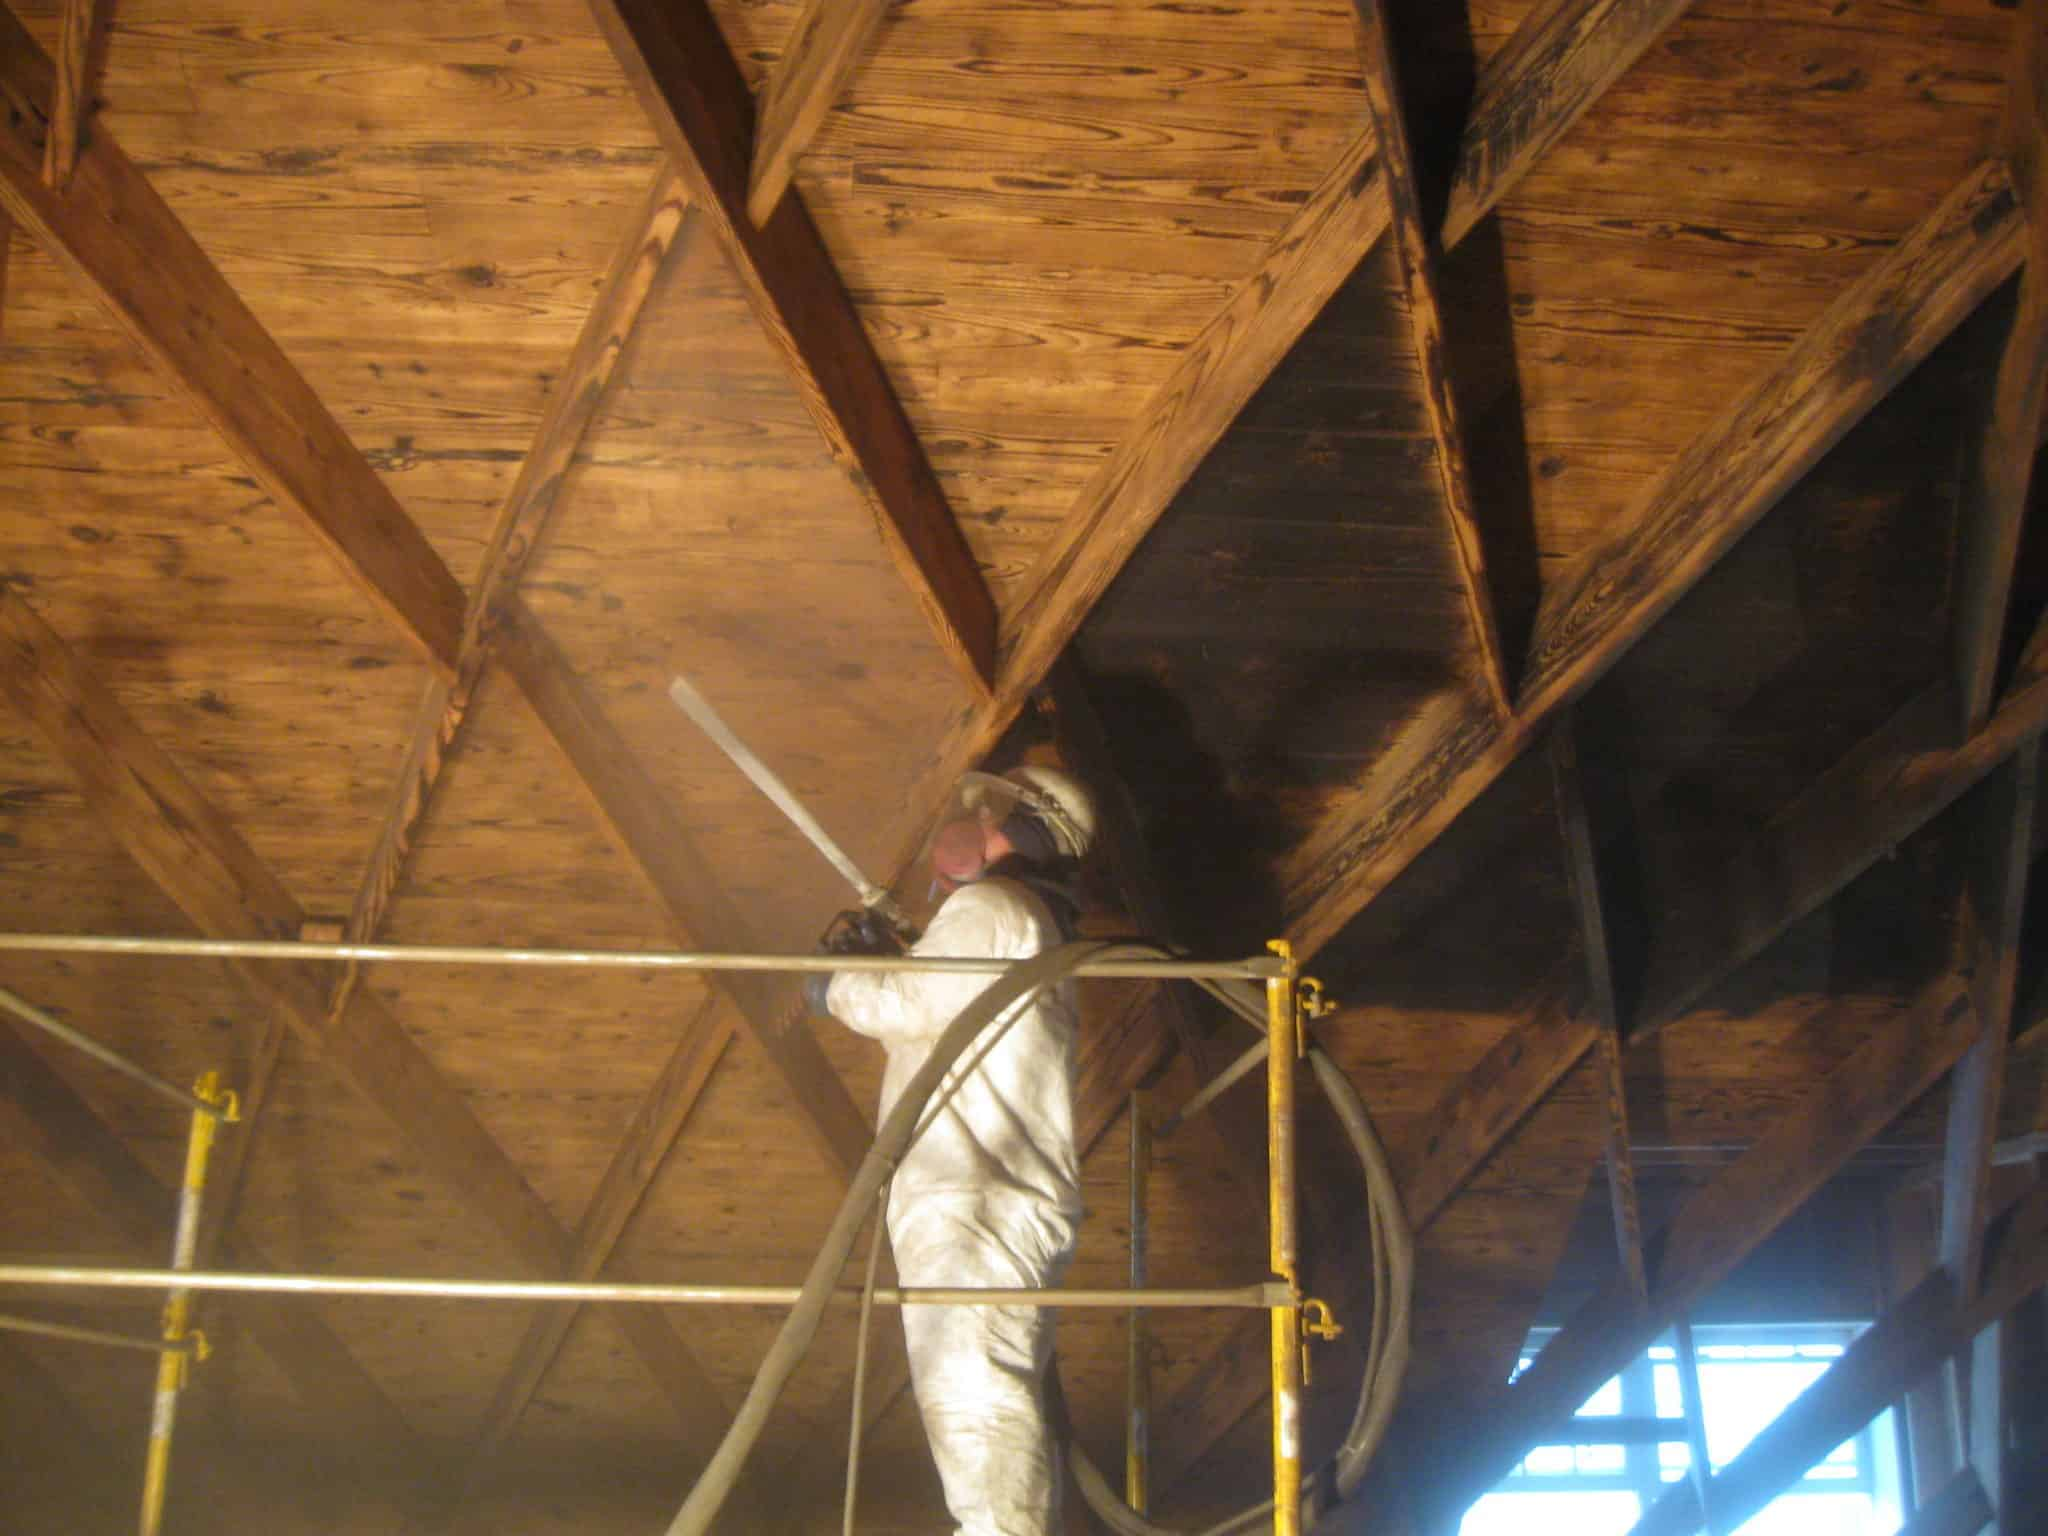 This historic ceiling was damaged by fire over 30 years ago. We successfully restored it using our dry ice blasting process.